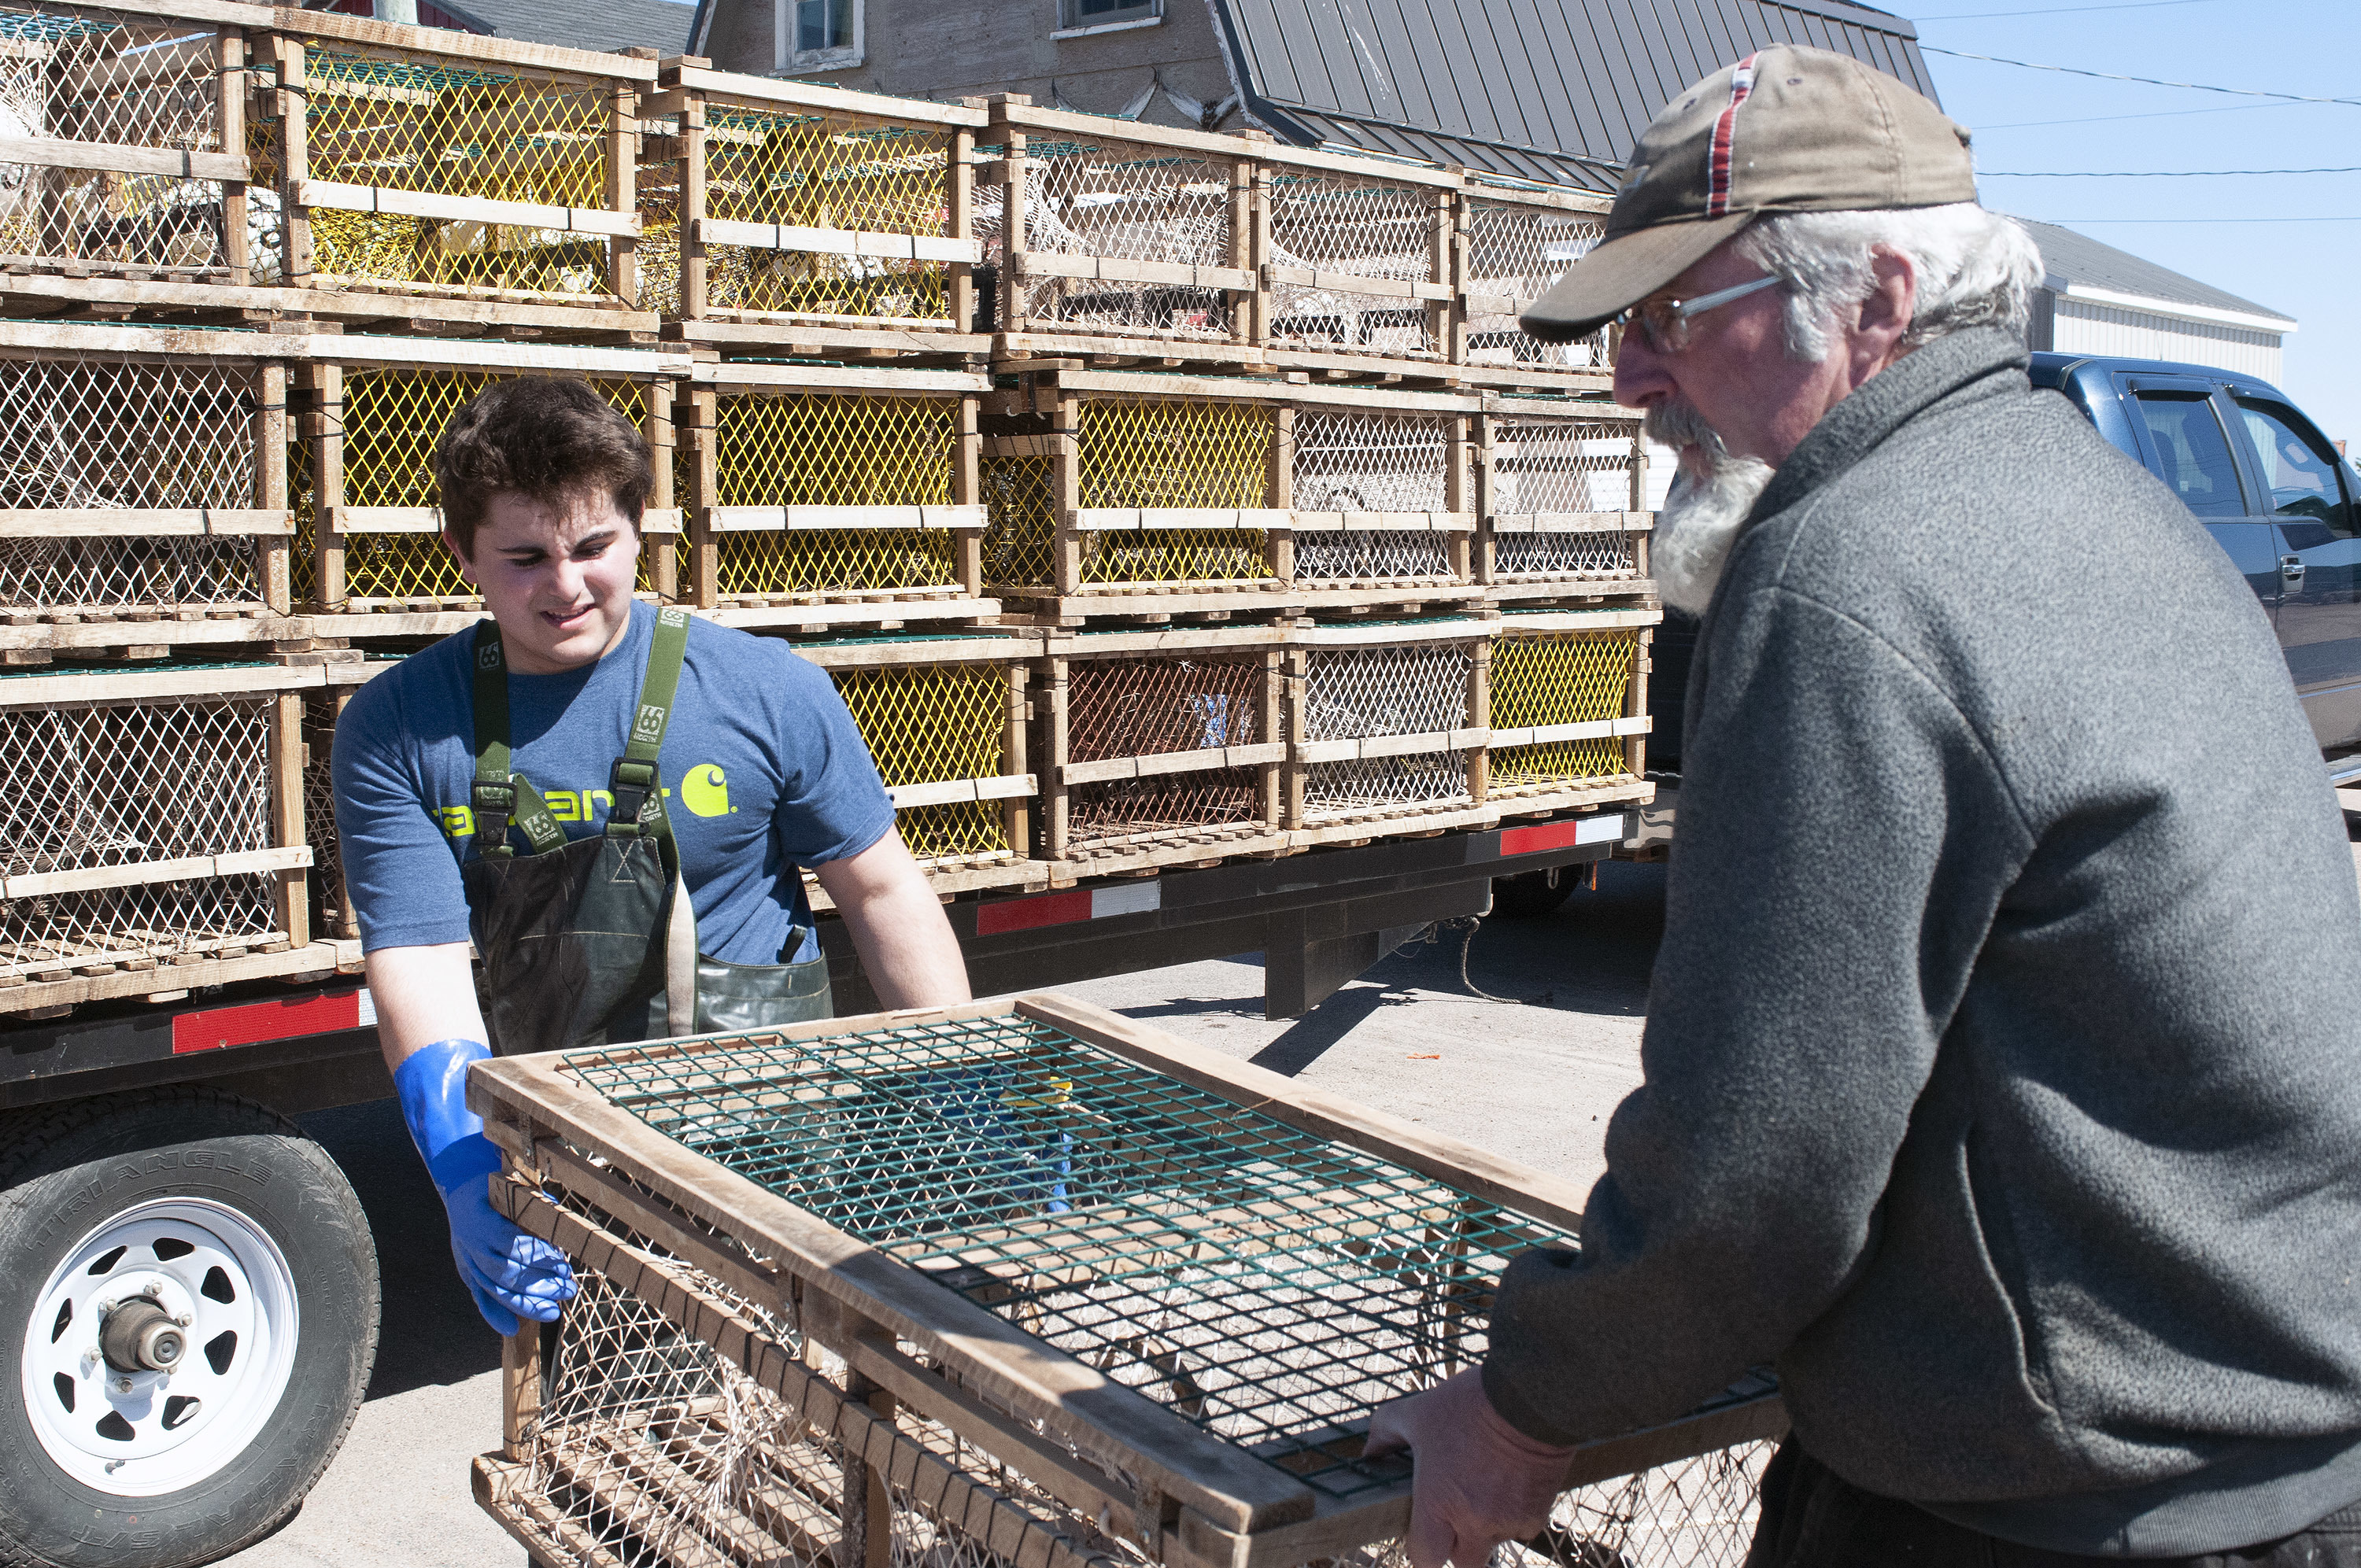 Noah Stanfield, left, and Allan Irving load traps after going out earlier in the morning to set the first load Tuesday at Malpeque. (Brian McInnis/CBC)